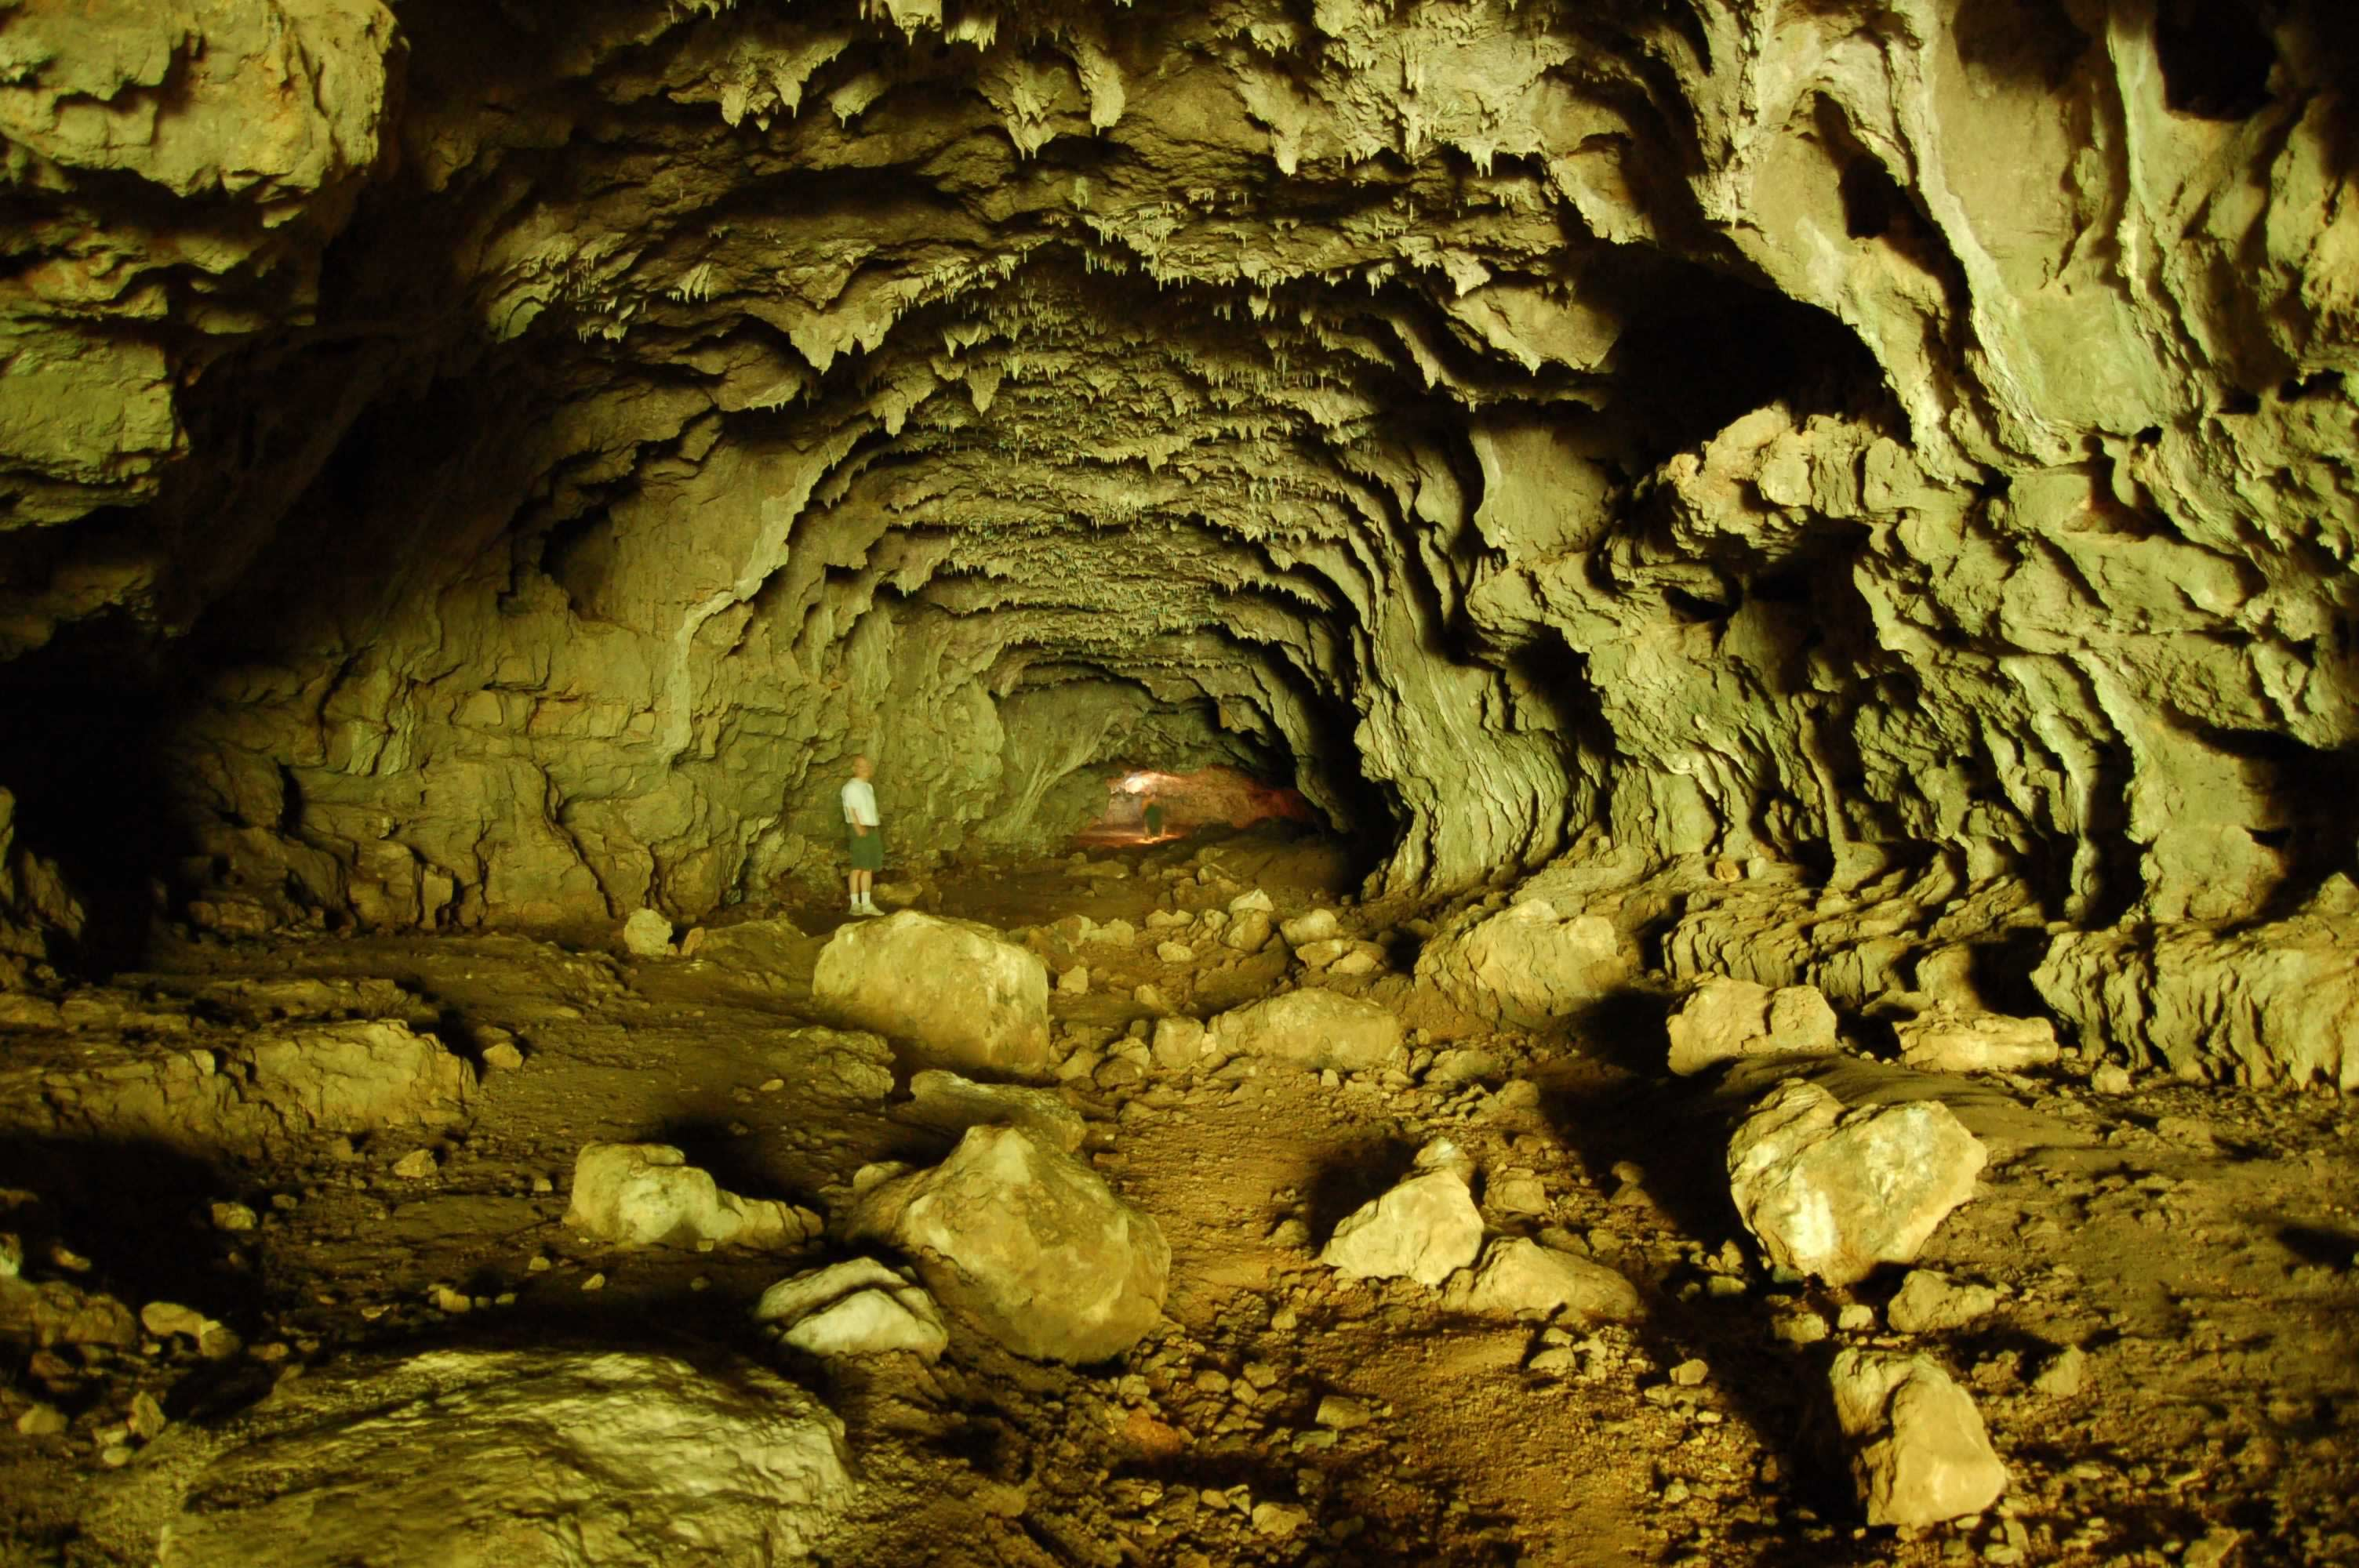 3008x2000 - Speleology Wallpapers 8